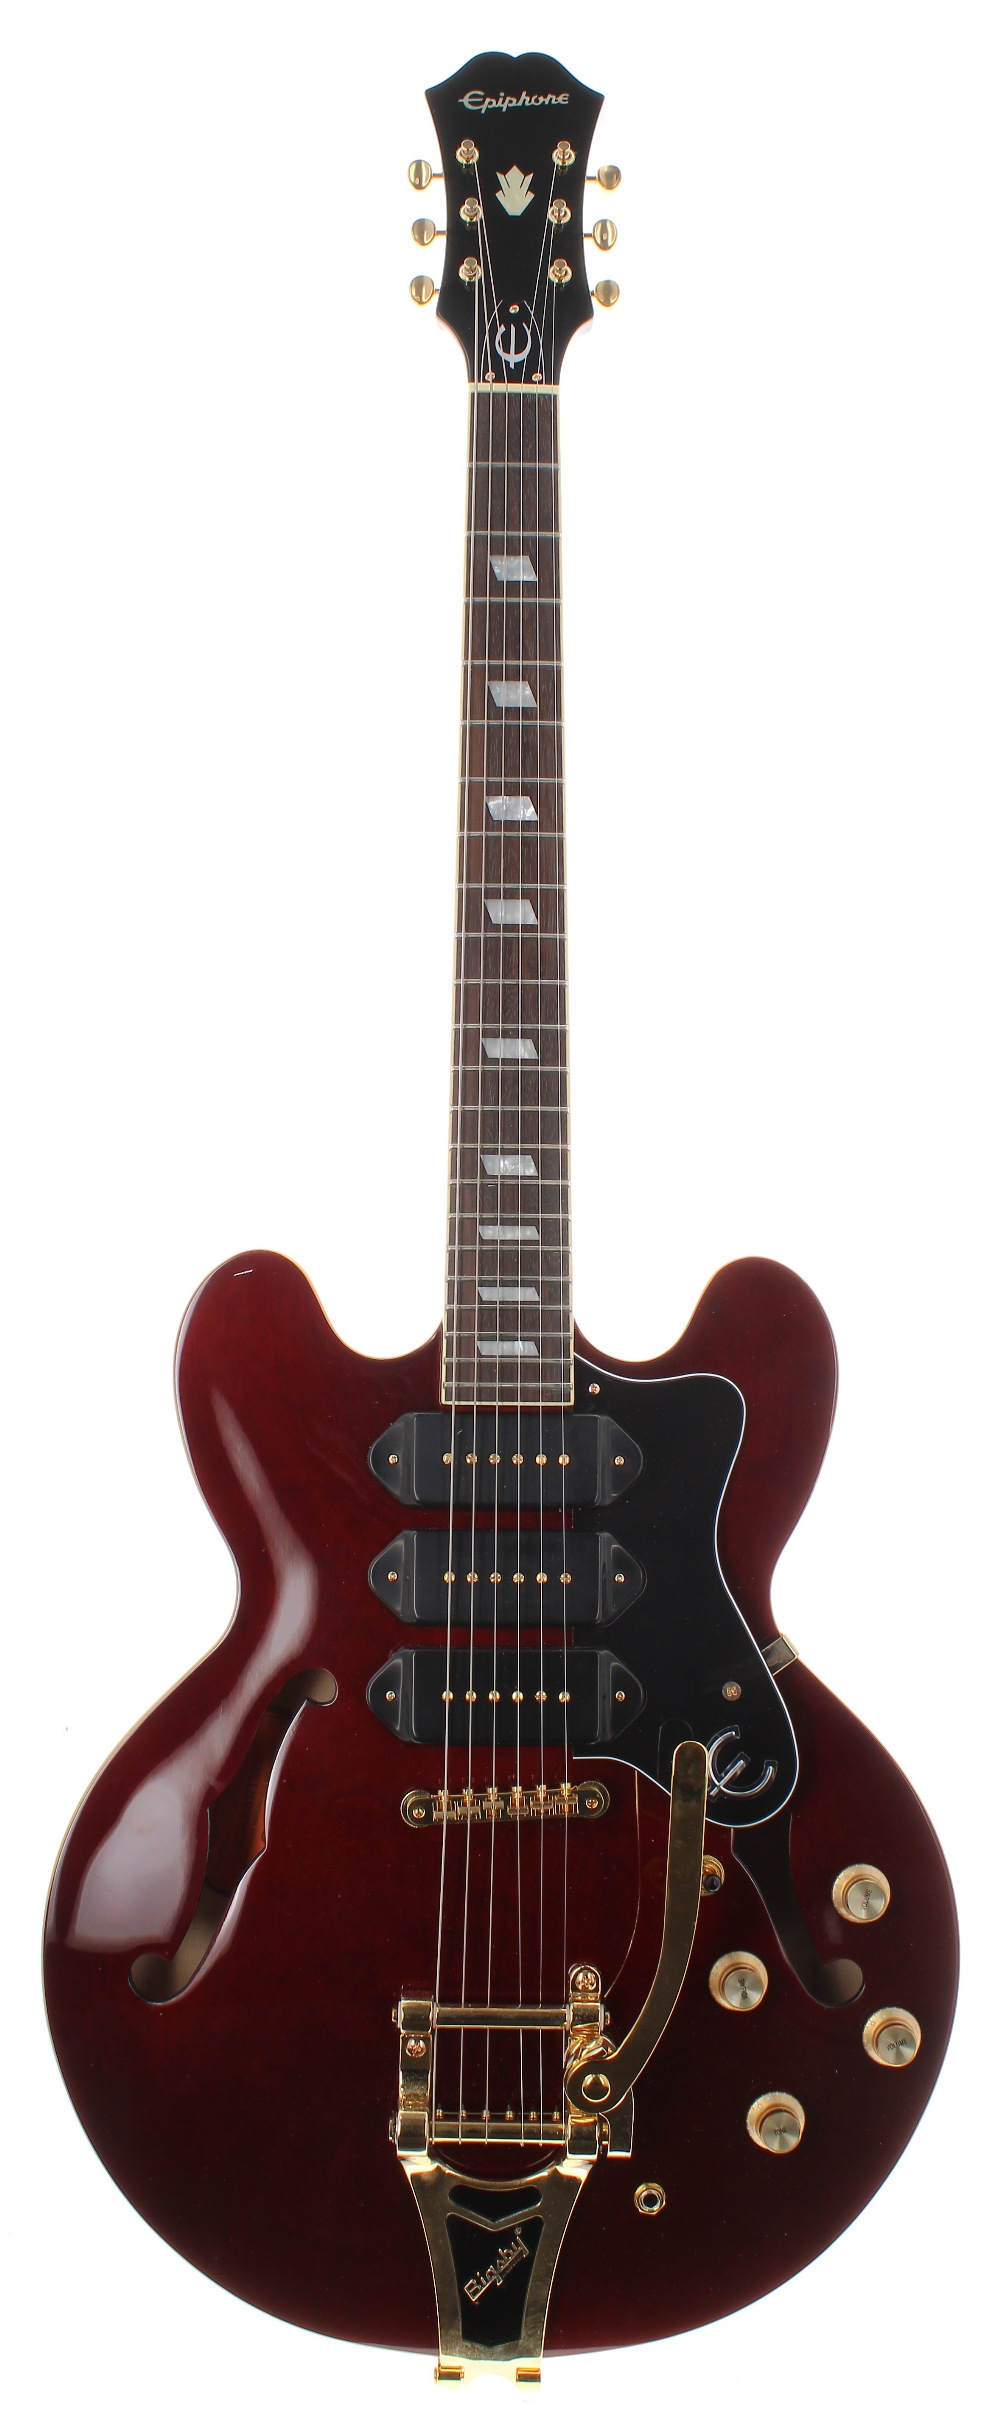 2017 Epiphone Limited Edition Riviera P93 semi-hollow body electric guitar, made in China, ser.